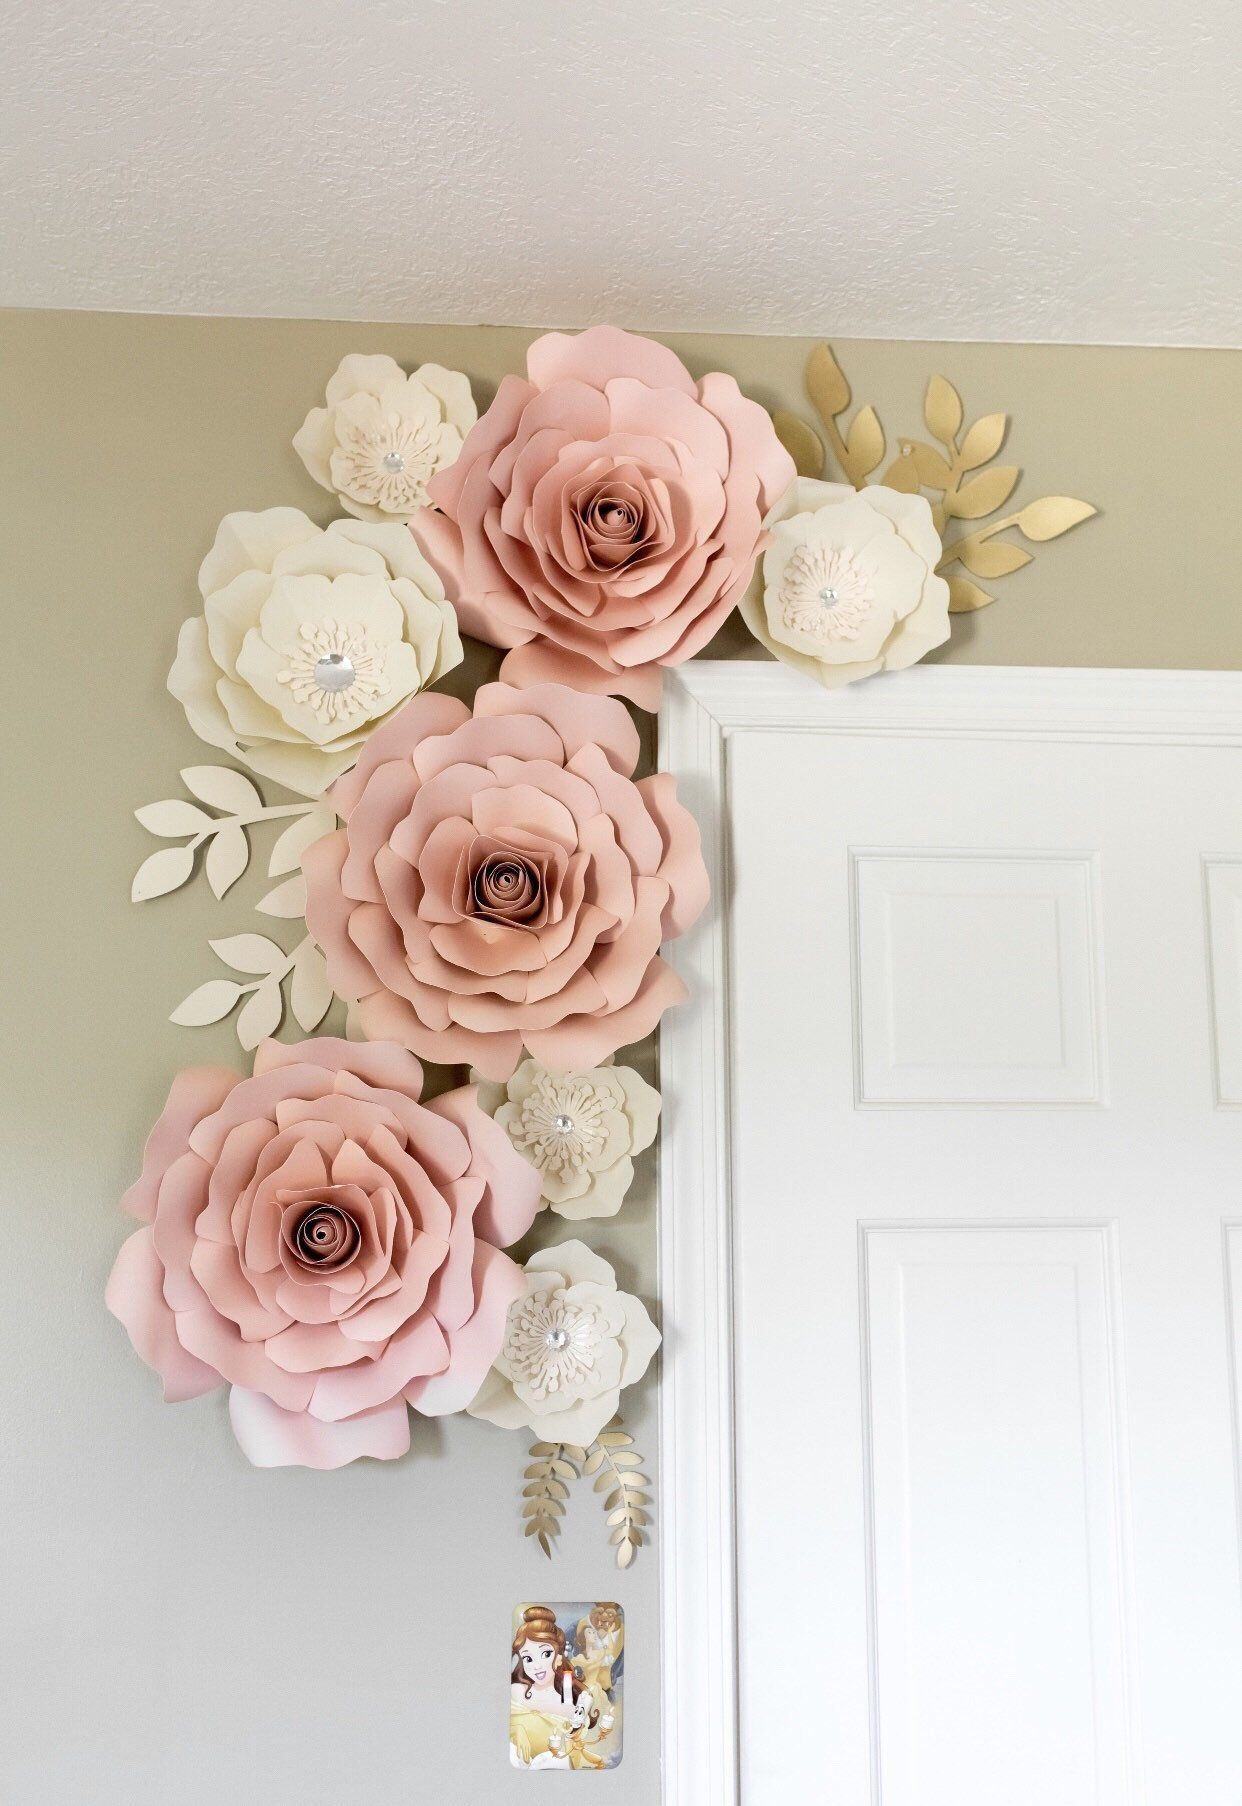 Blush and white paper flowers | paper flower wall decor | nursery wall decor | paper flower backdrop | paper flower photo backdrop party